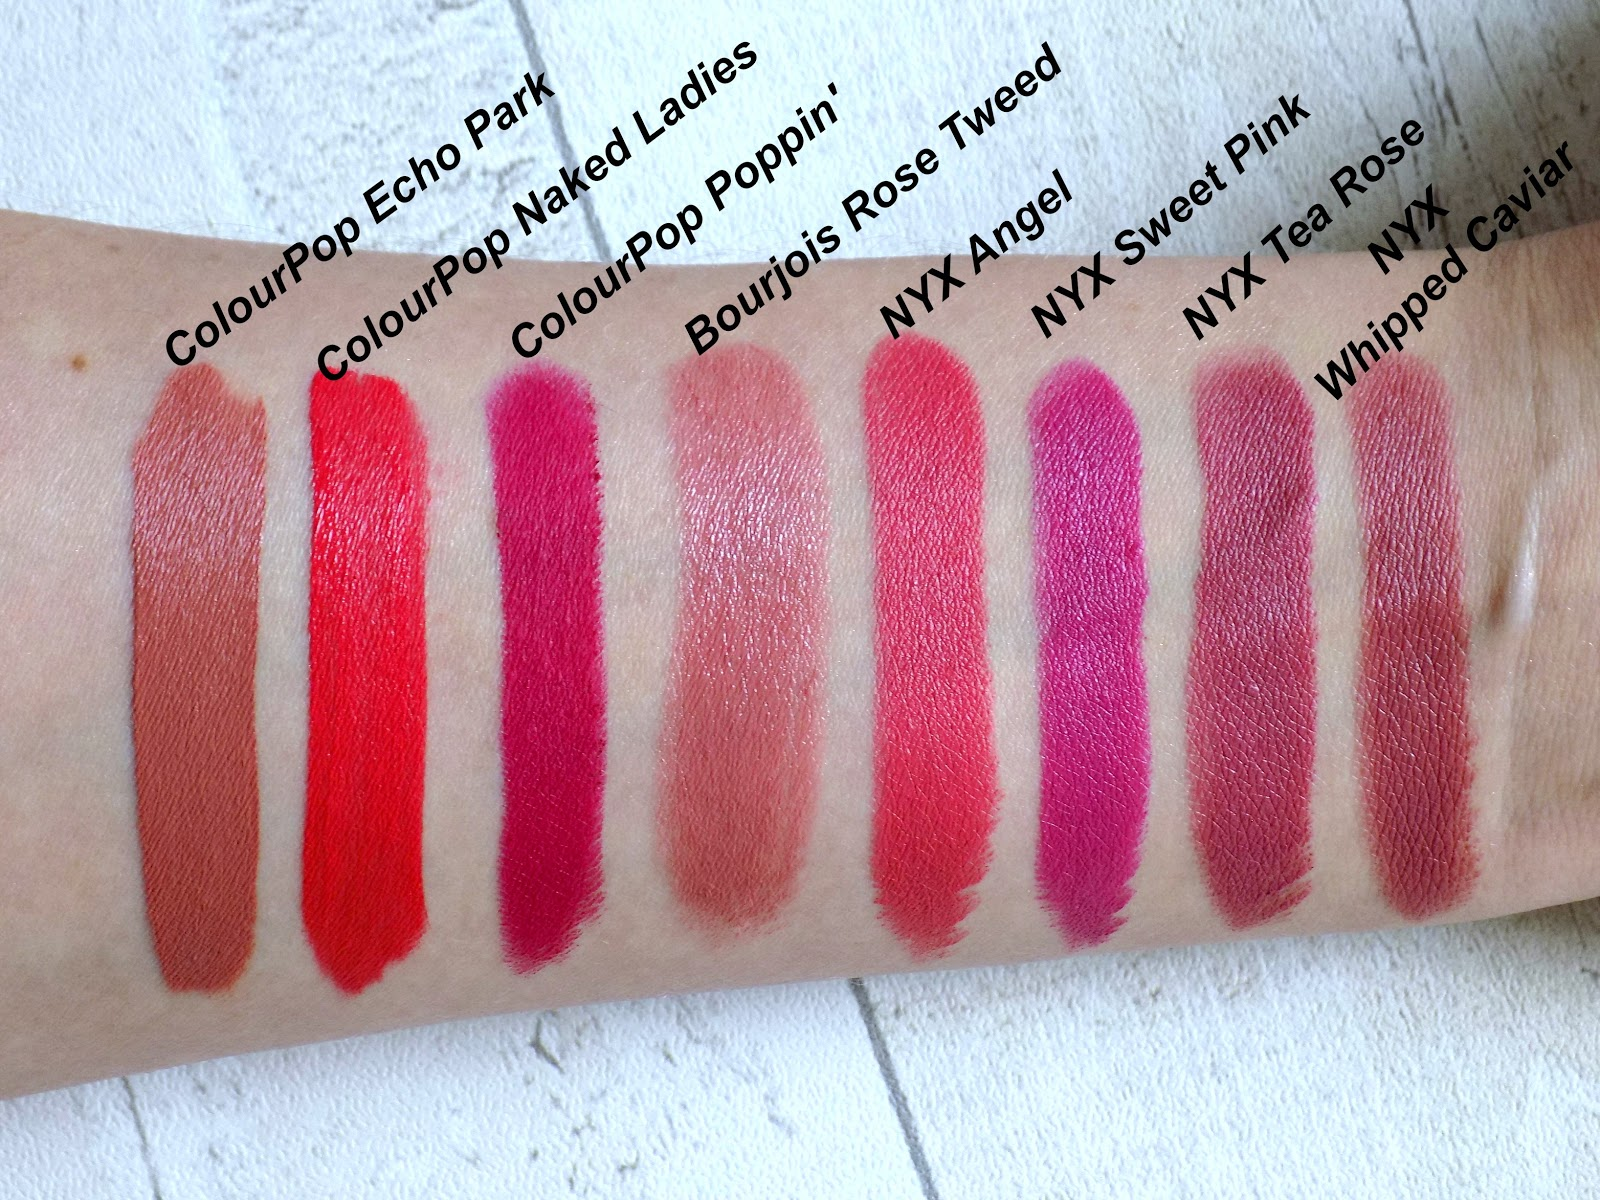 Summer lipsticks swatches